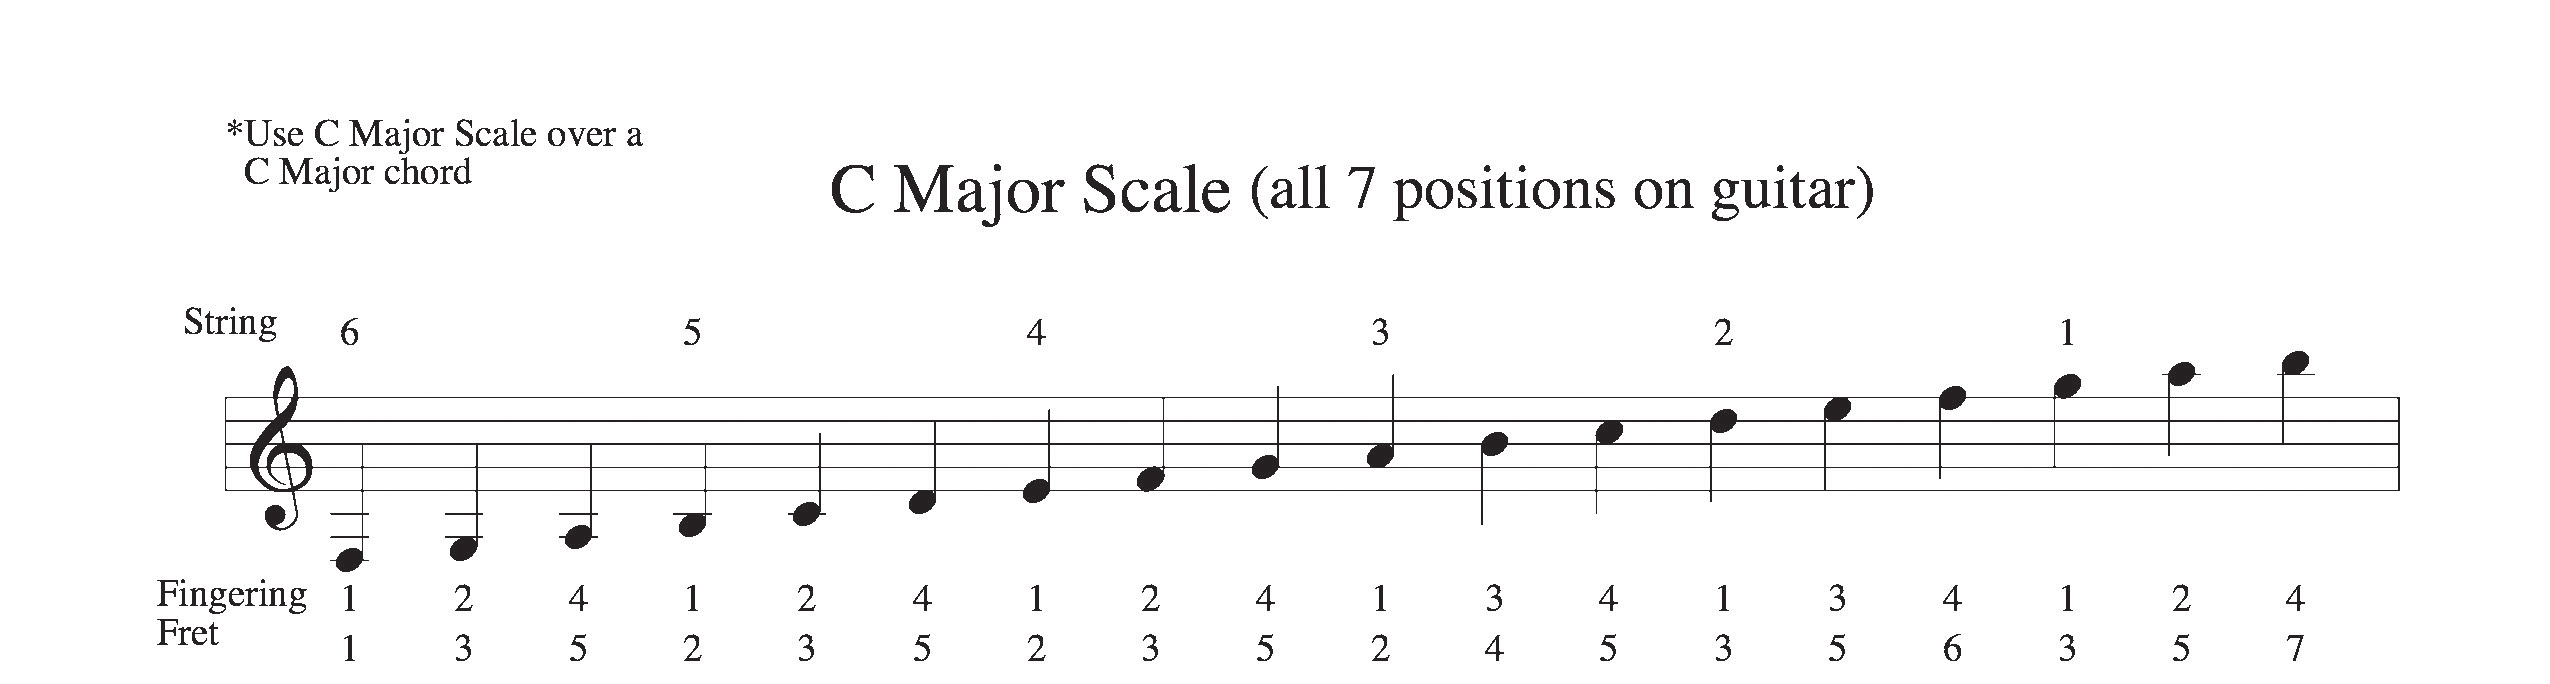 1st-steps-for-beginning-guitarist-major-scale-fingering-example-guitar-beginners